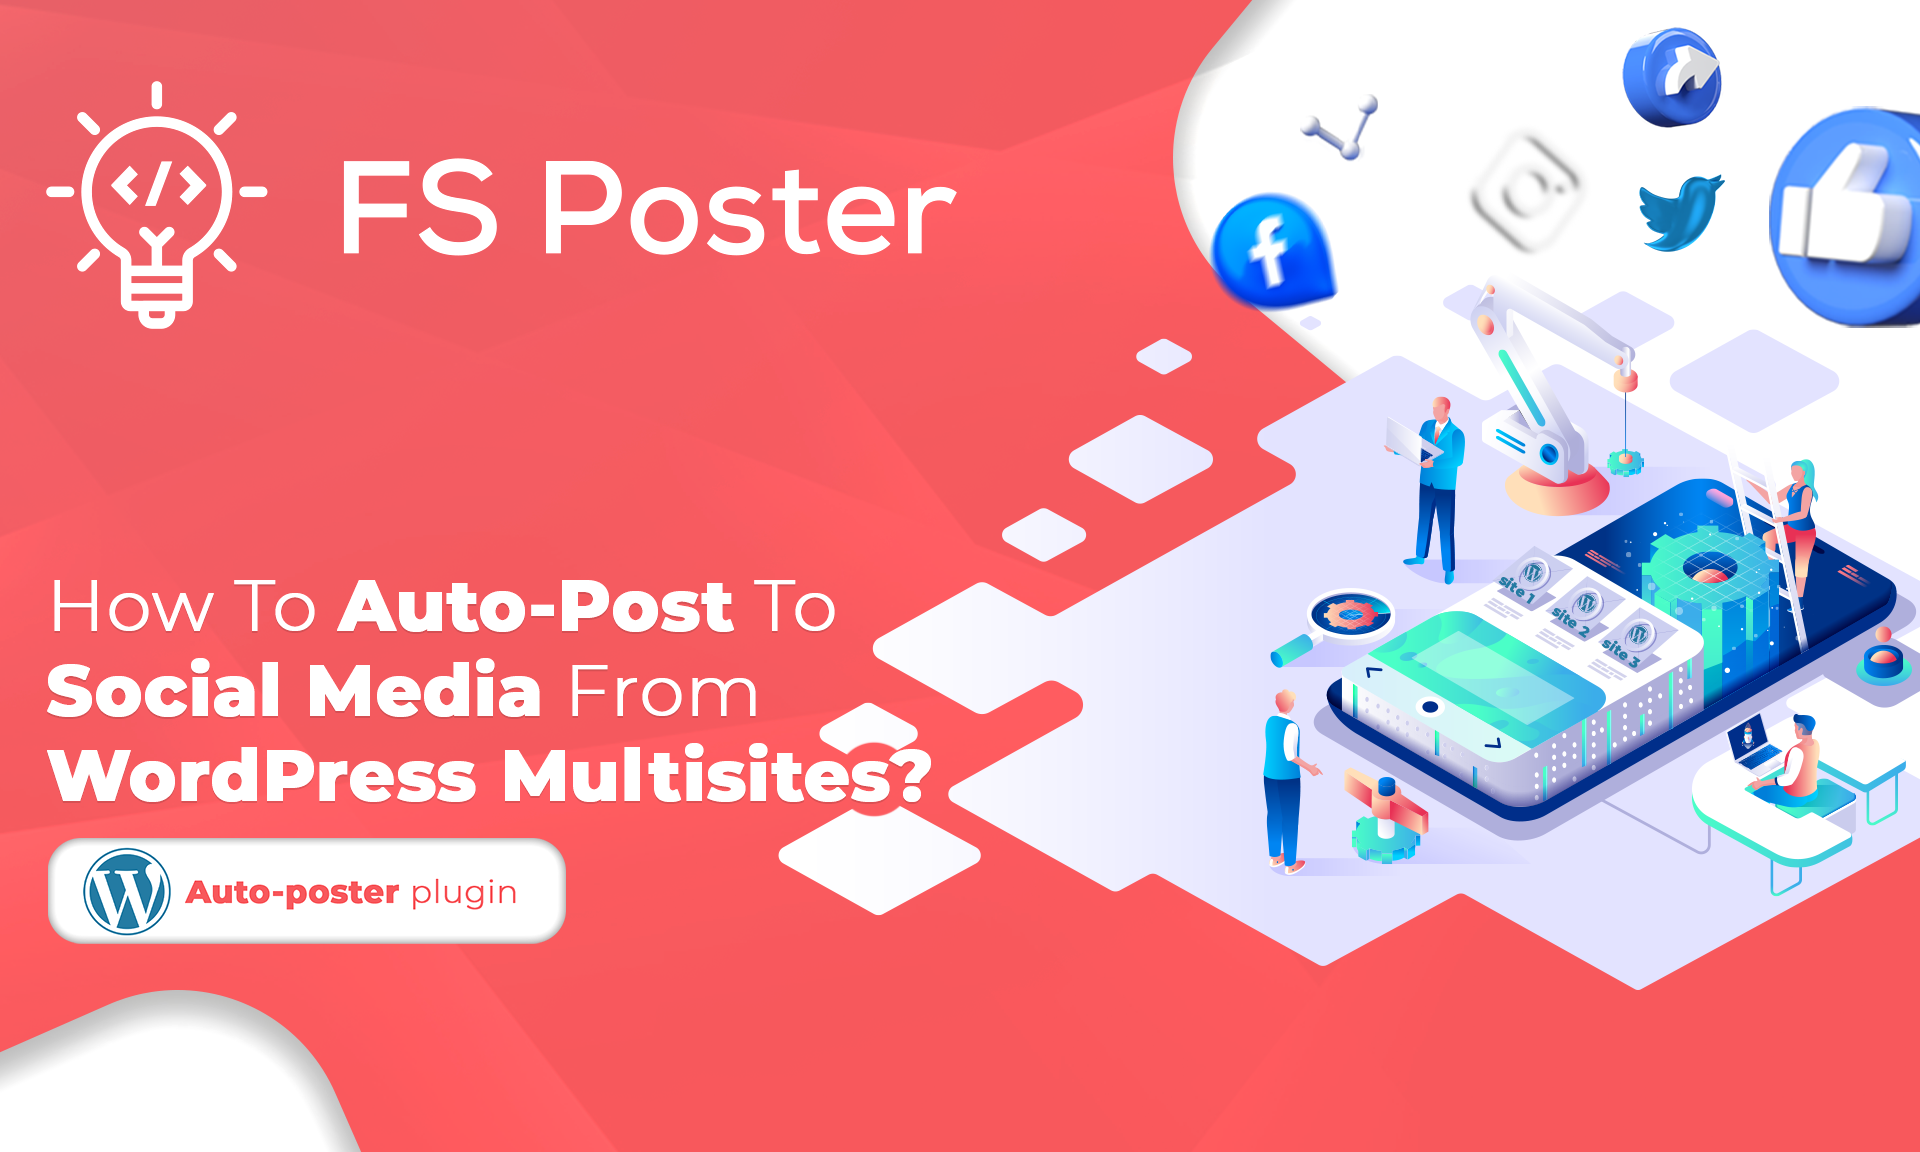 How To Auto-Post To Social Media From WordPress Multisites?